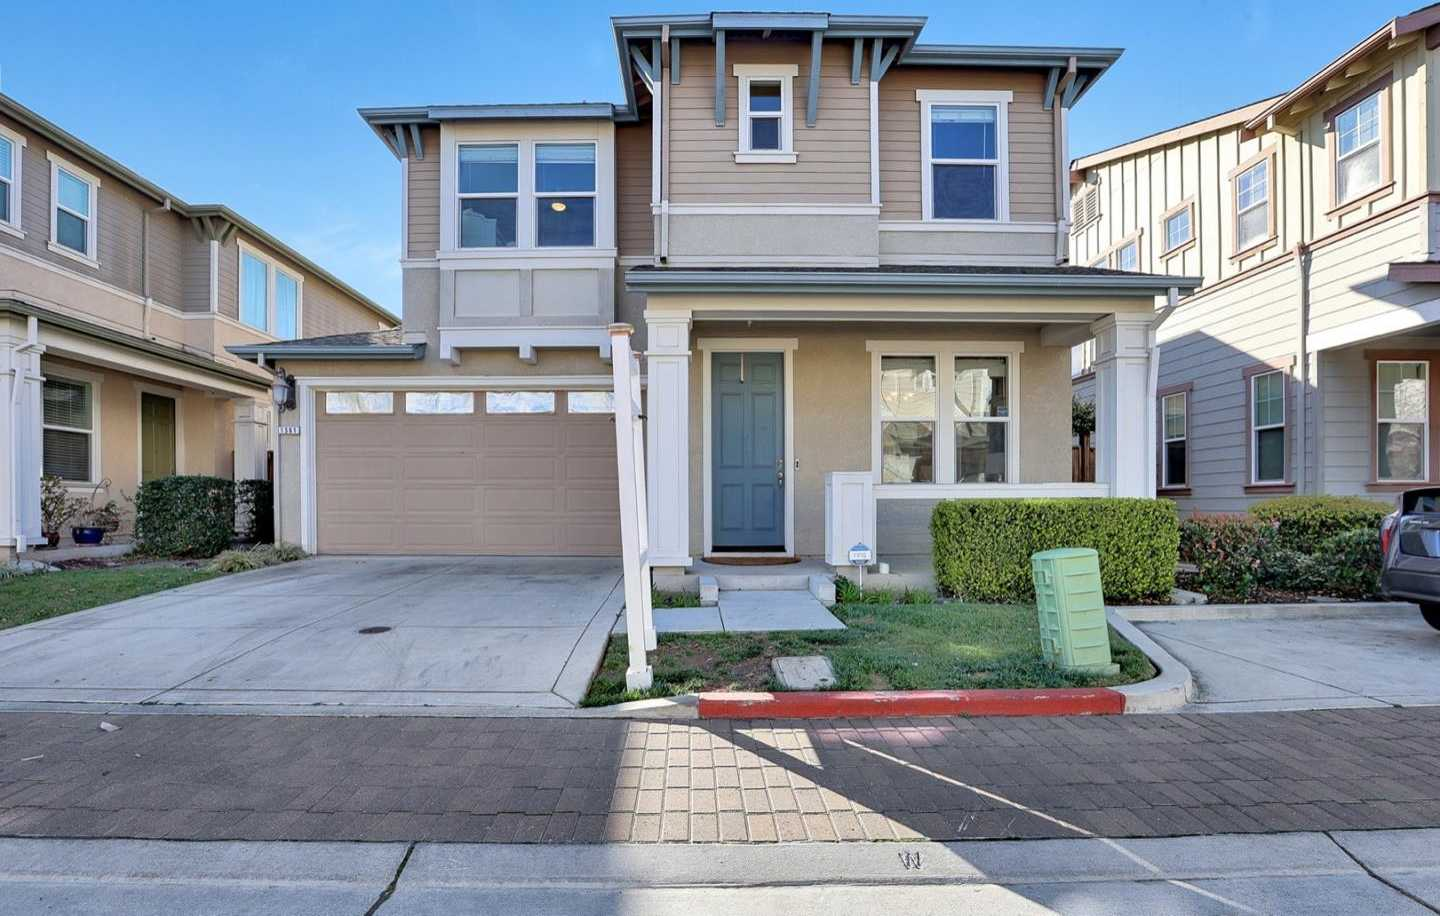 $1,899,000 - 3Br/3Ba -  for Sale in Sunnyvale